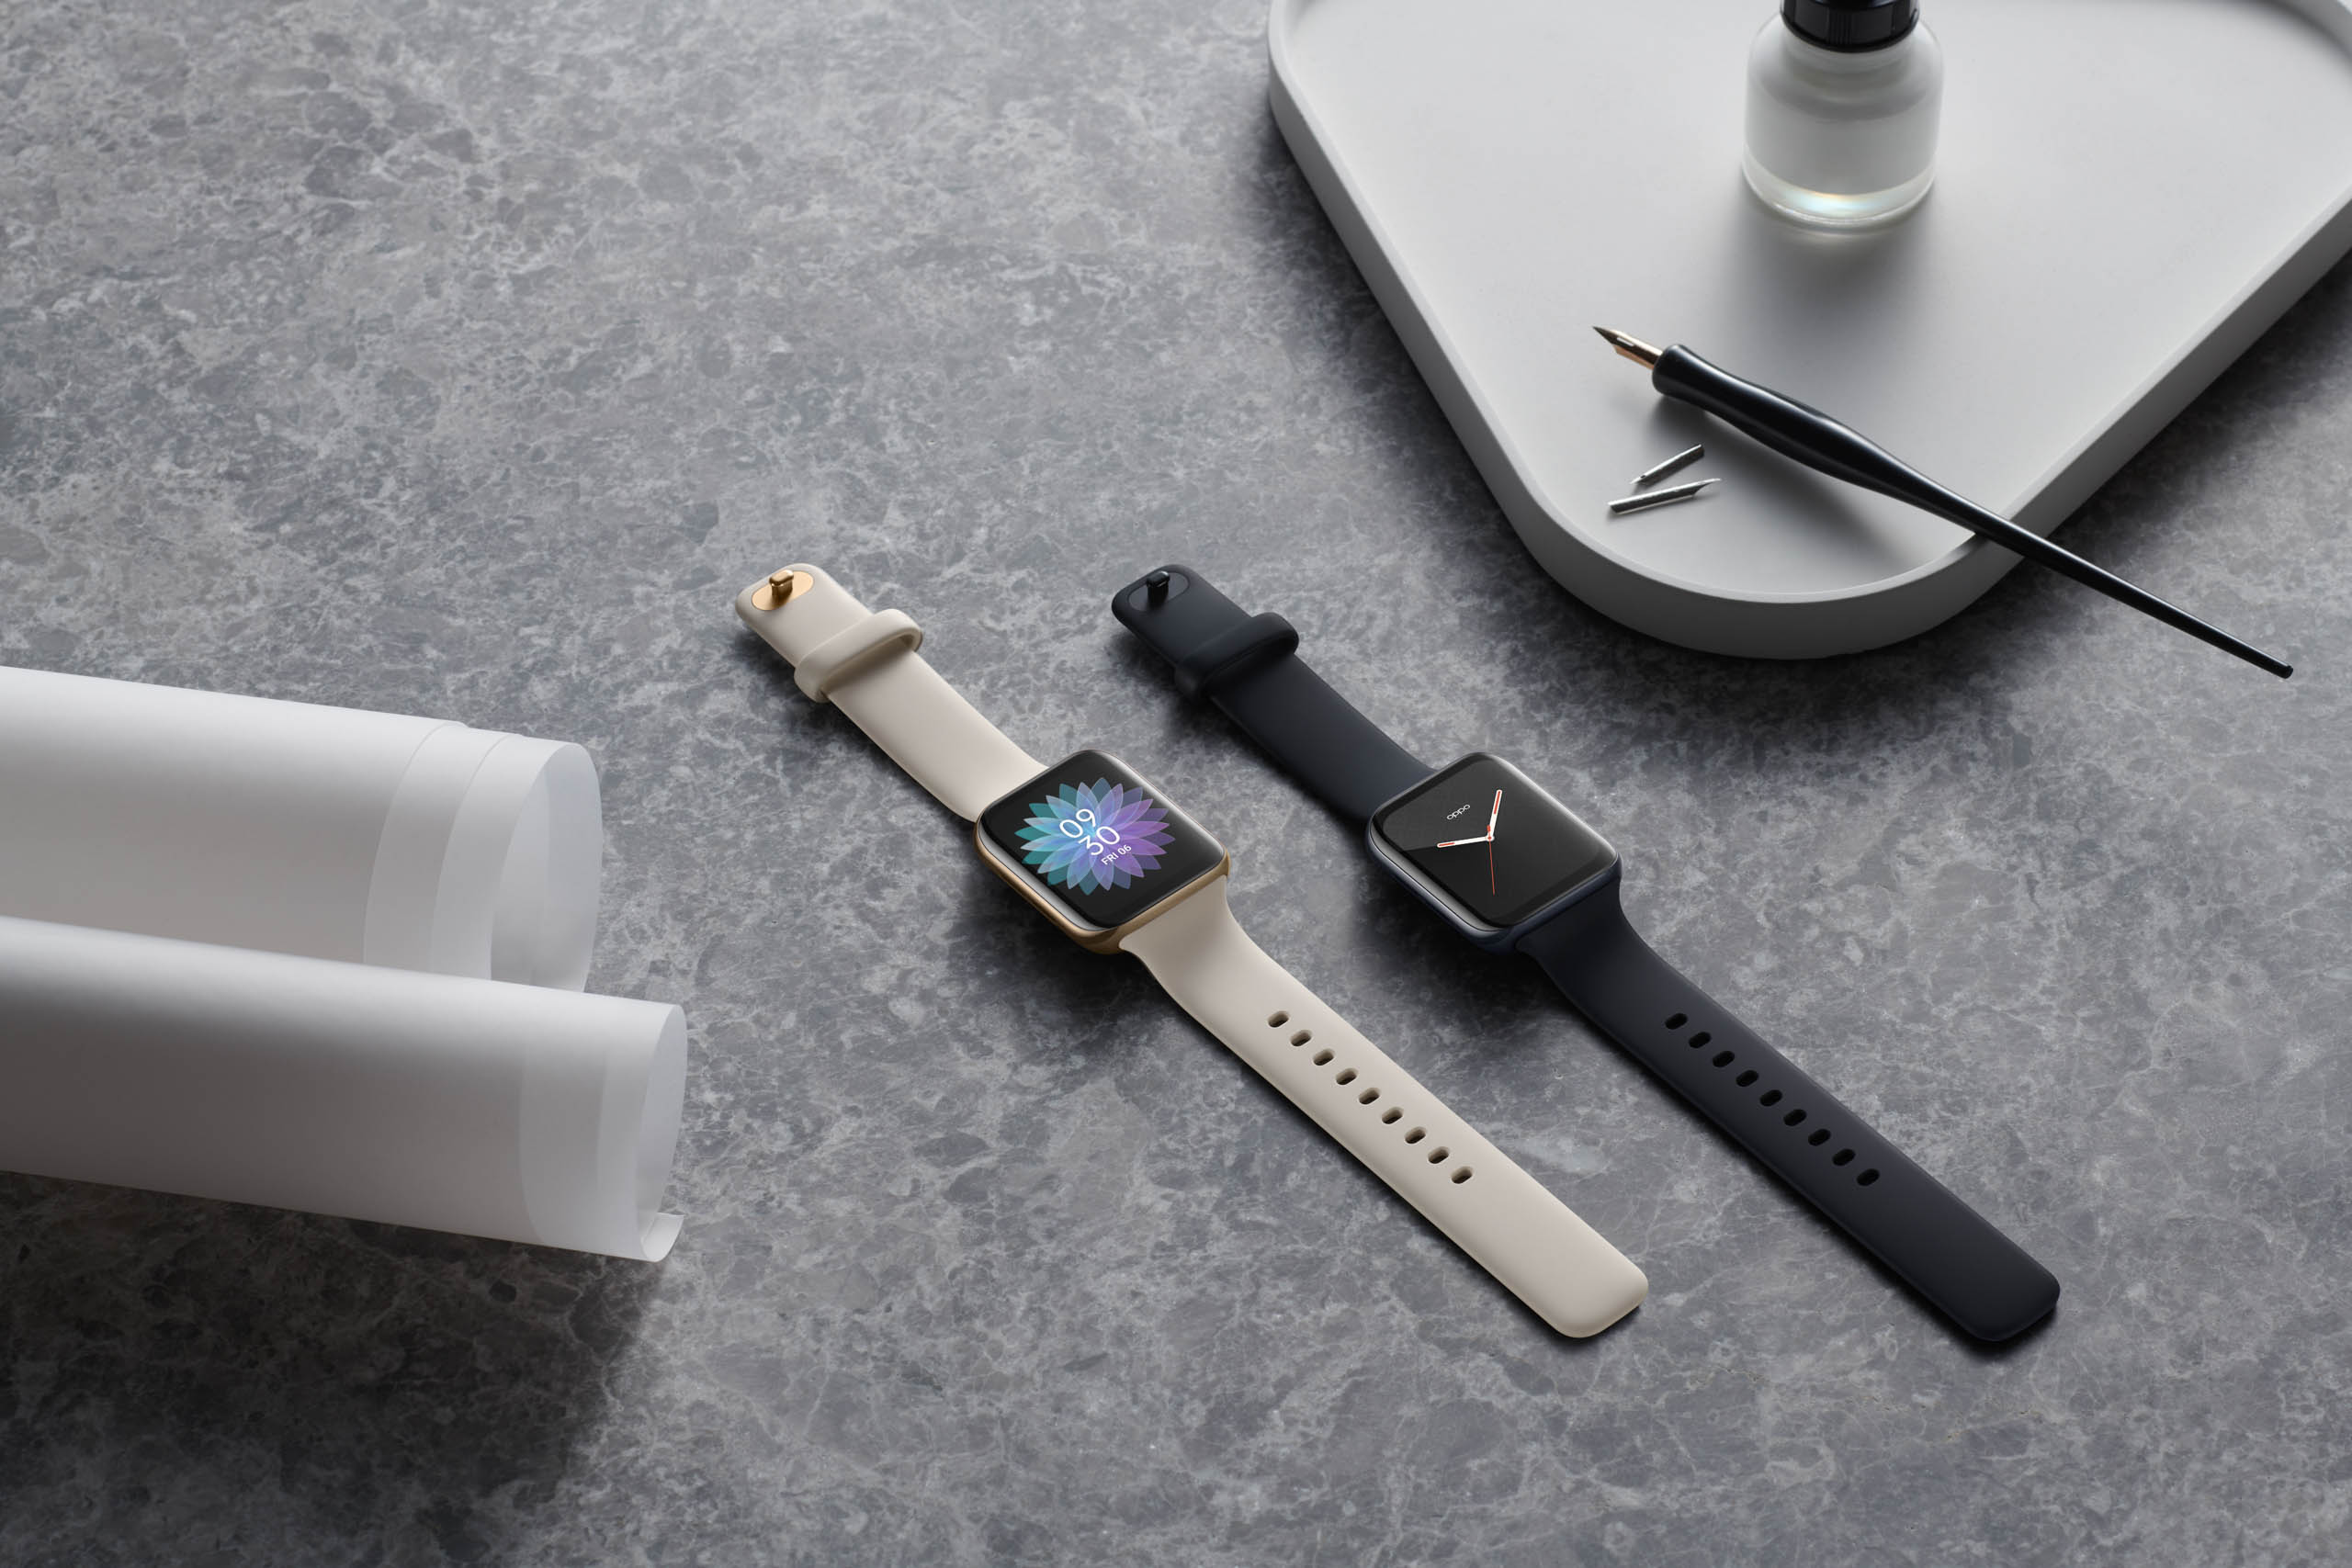 Oppo's new smartwatch uses Wear OS